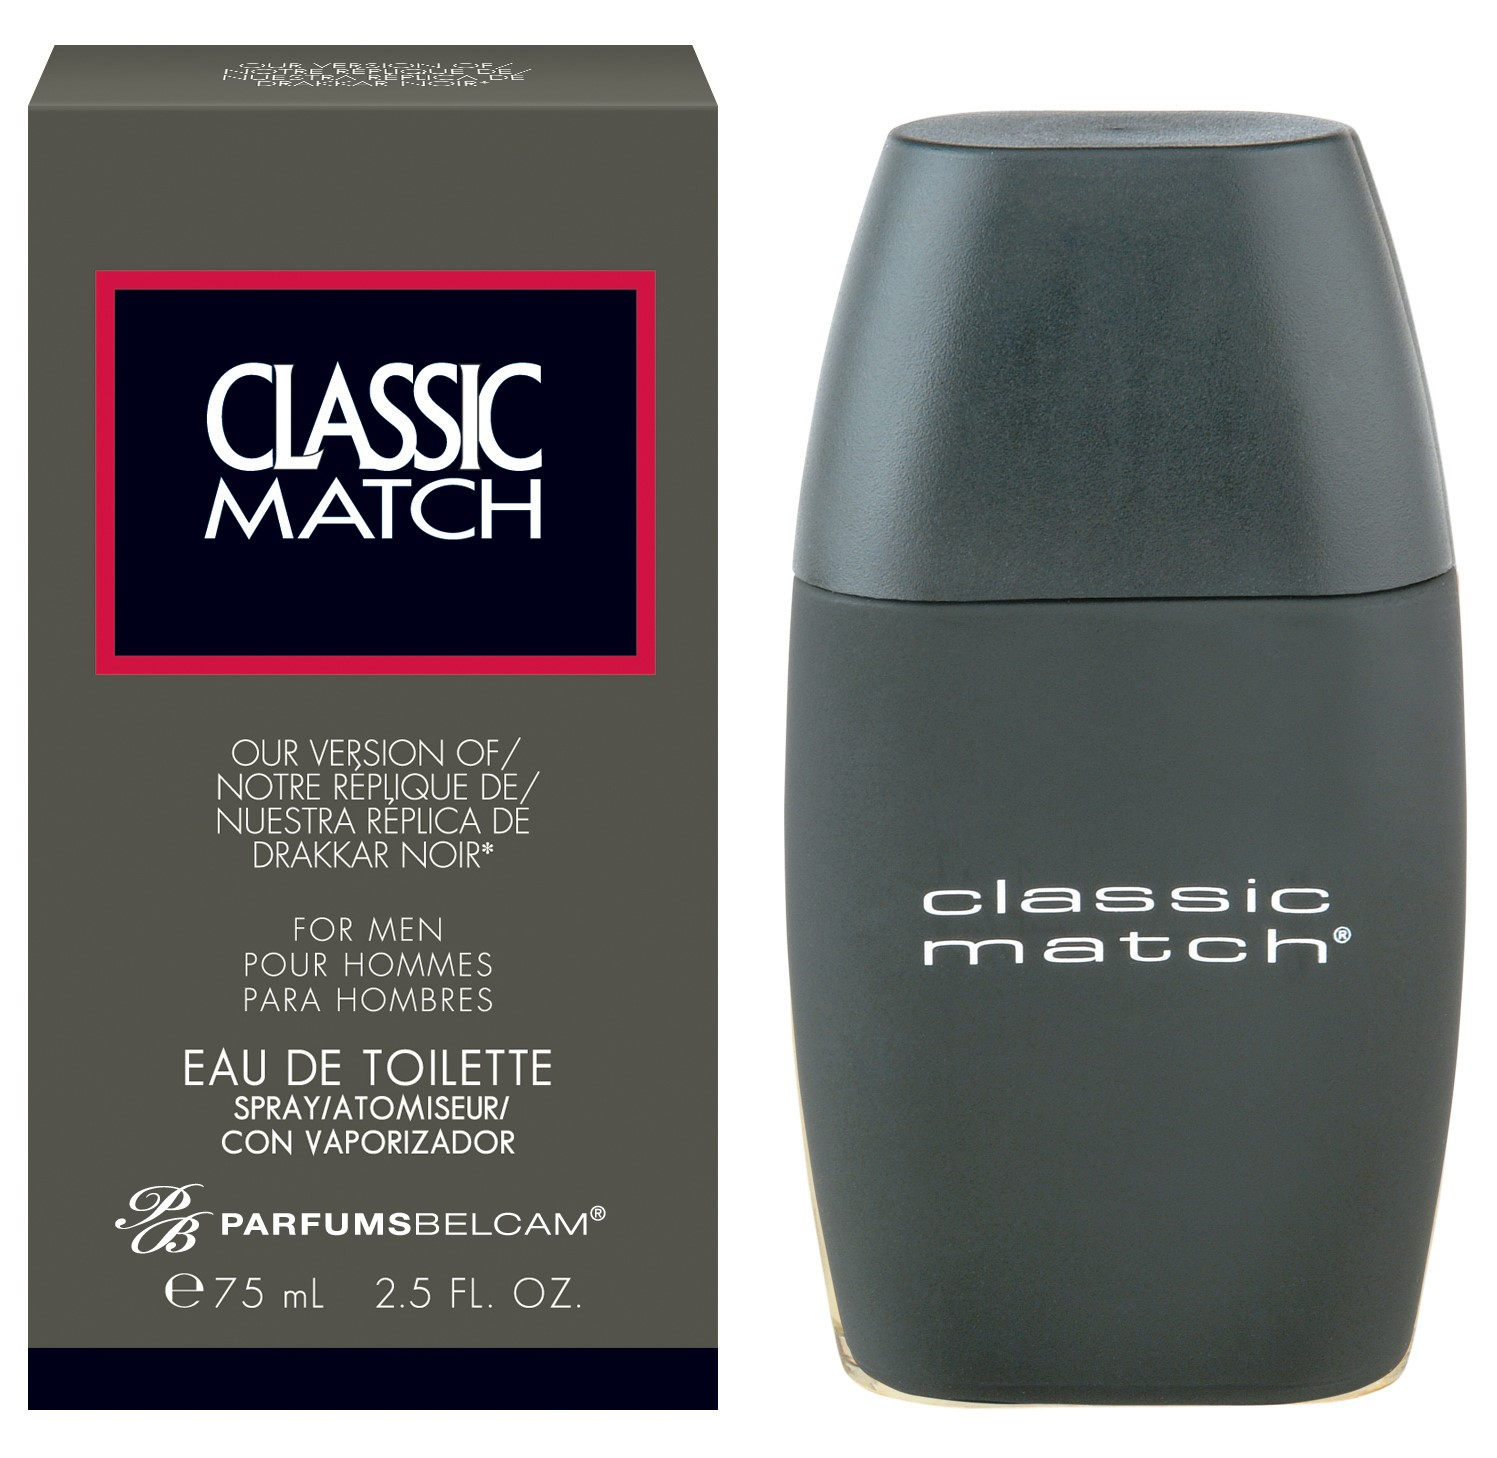 Classic Match, version of Drakkar Noir*, by PB ParfumsBelcam, Eau de Toilette Spray for Men, 2.5 oz